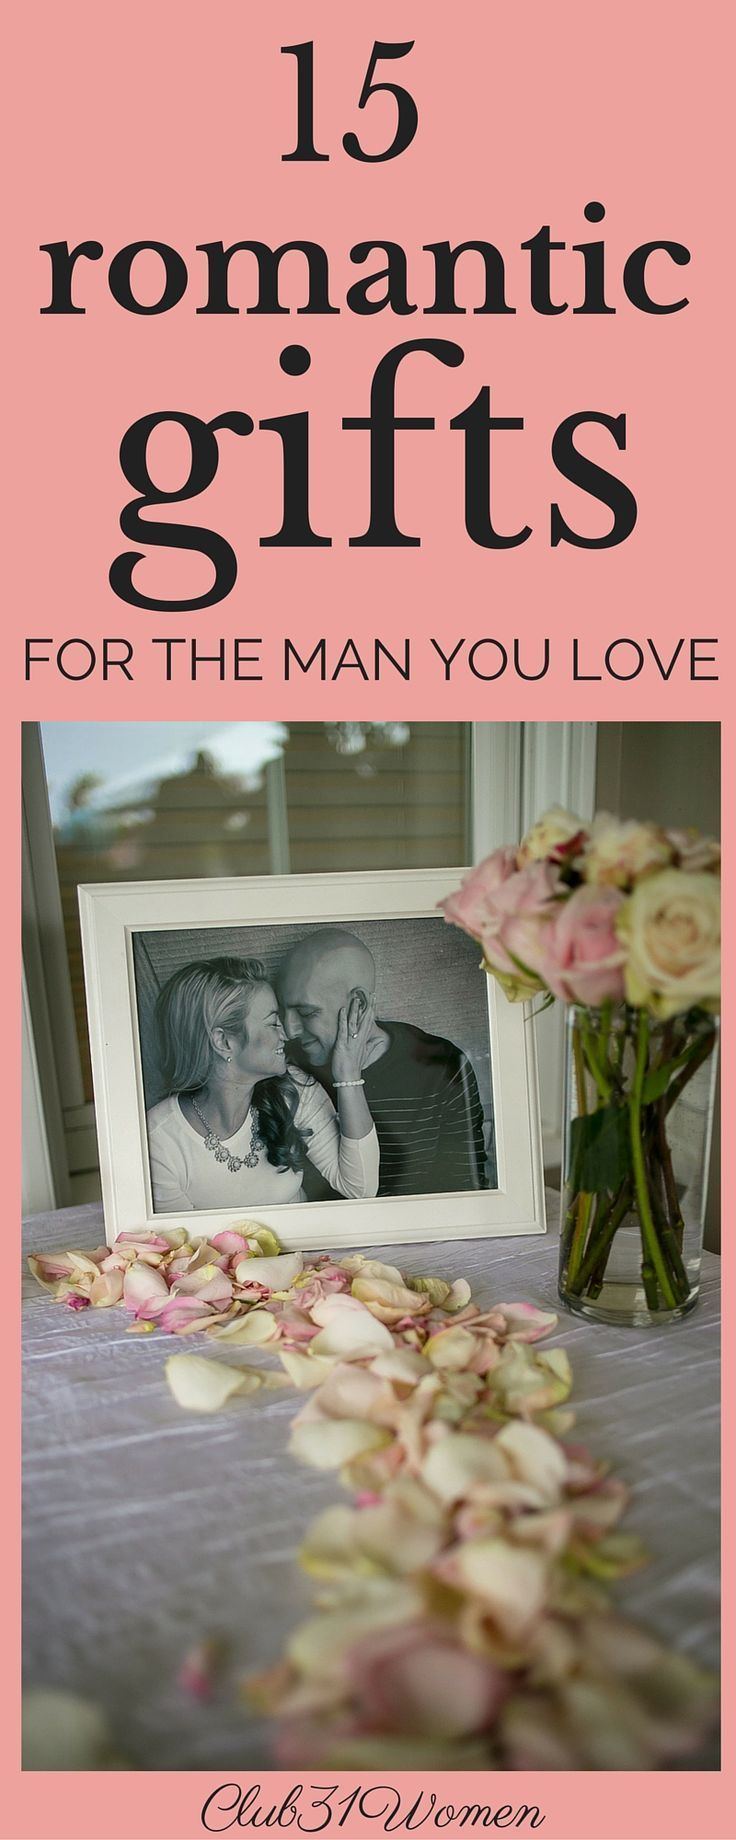 15 Wedding Anniversary Gift Ideas For Him: 15 Surprisingly Romantic Gift Ideas For The Man You Love